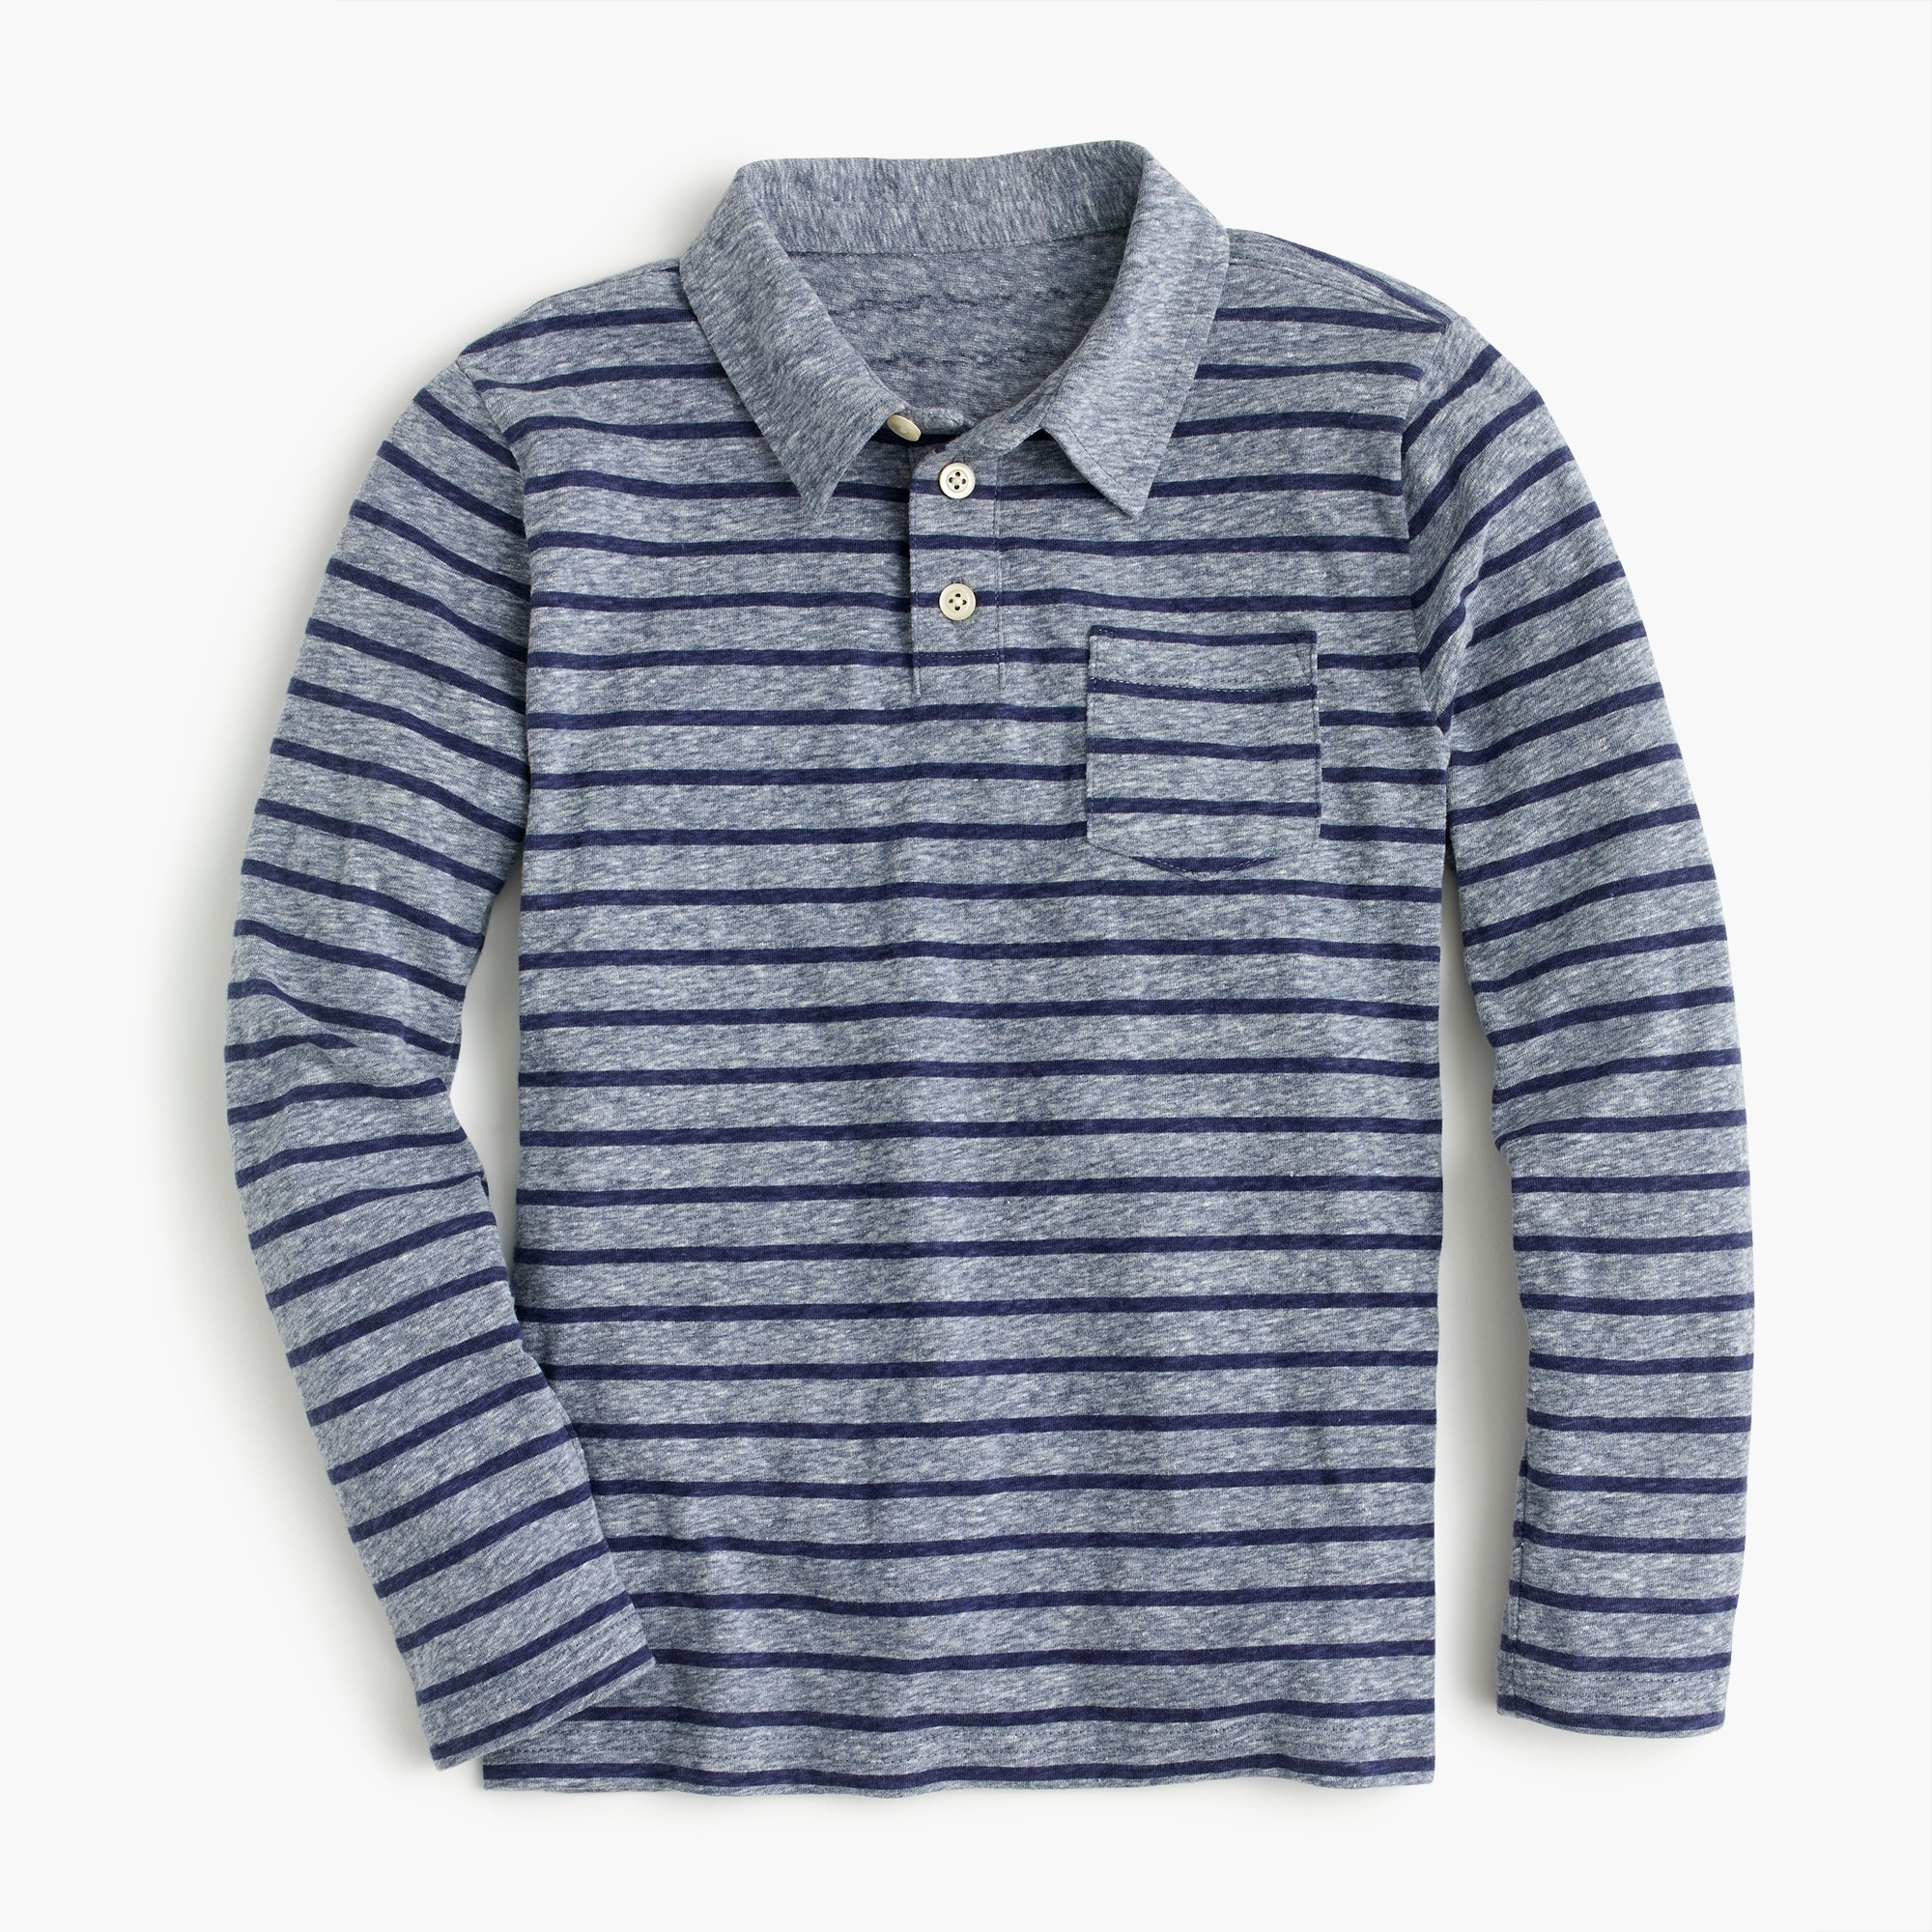 Boys' striped long-sleeve polo